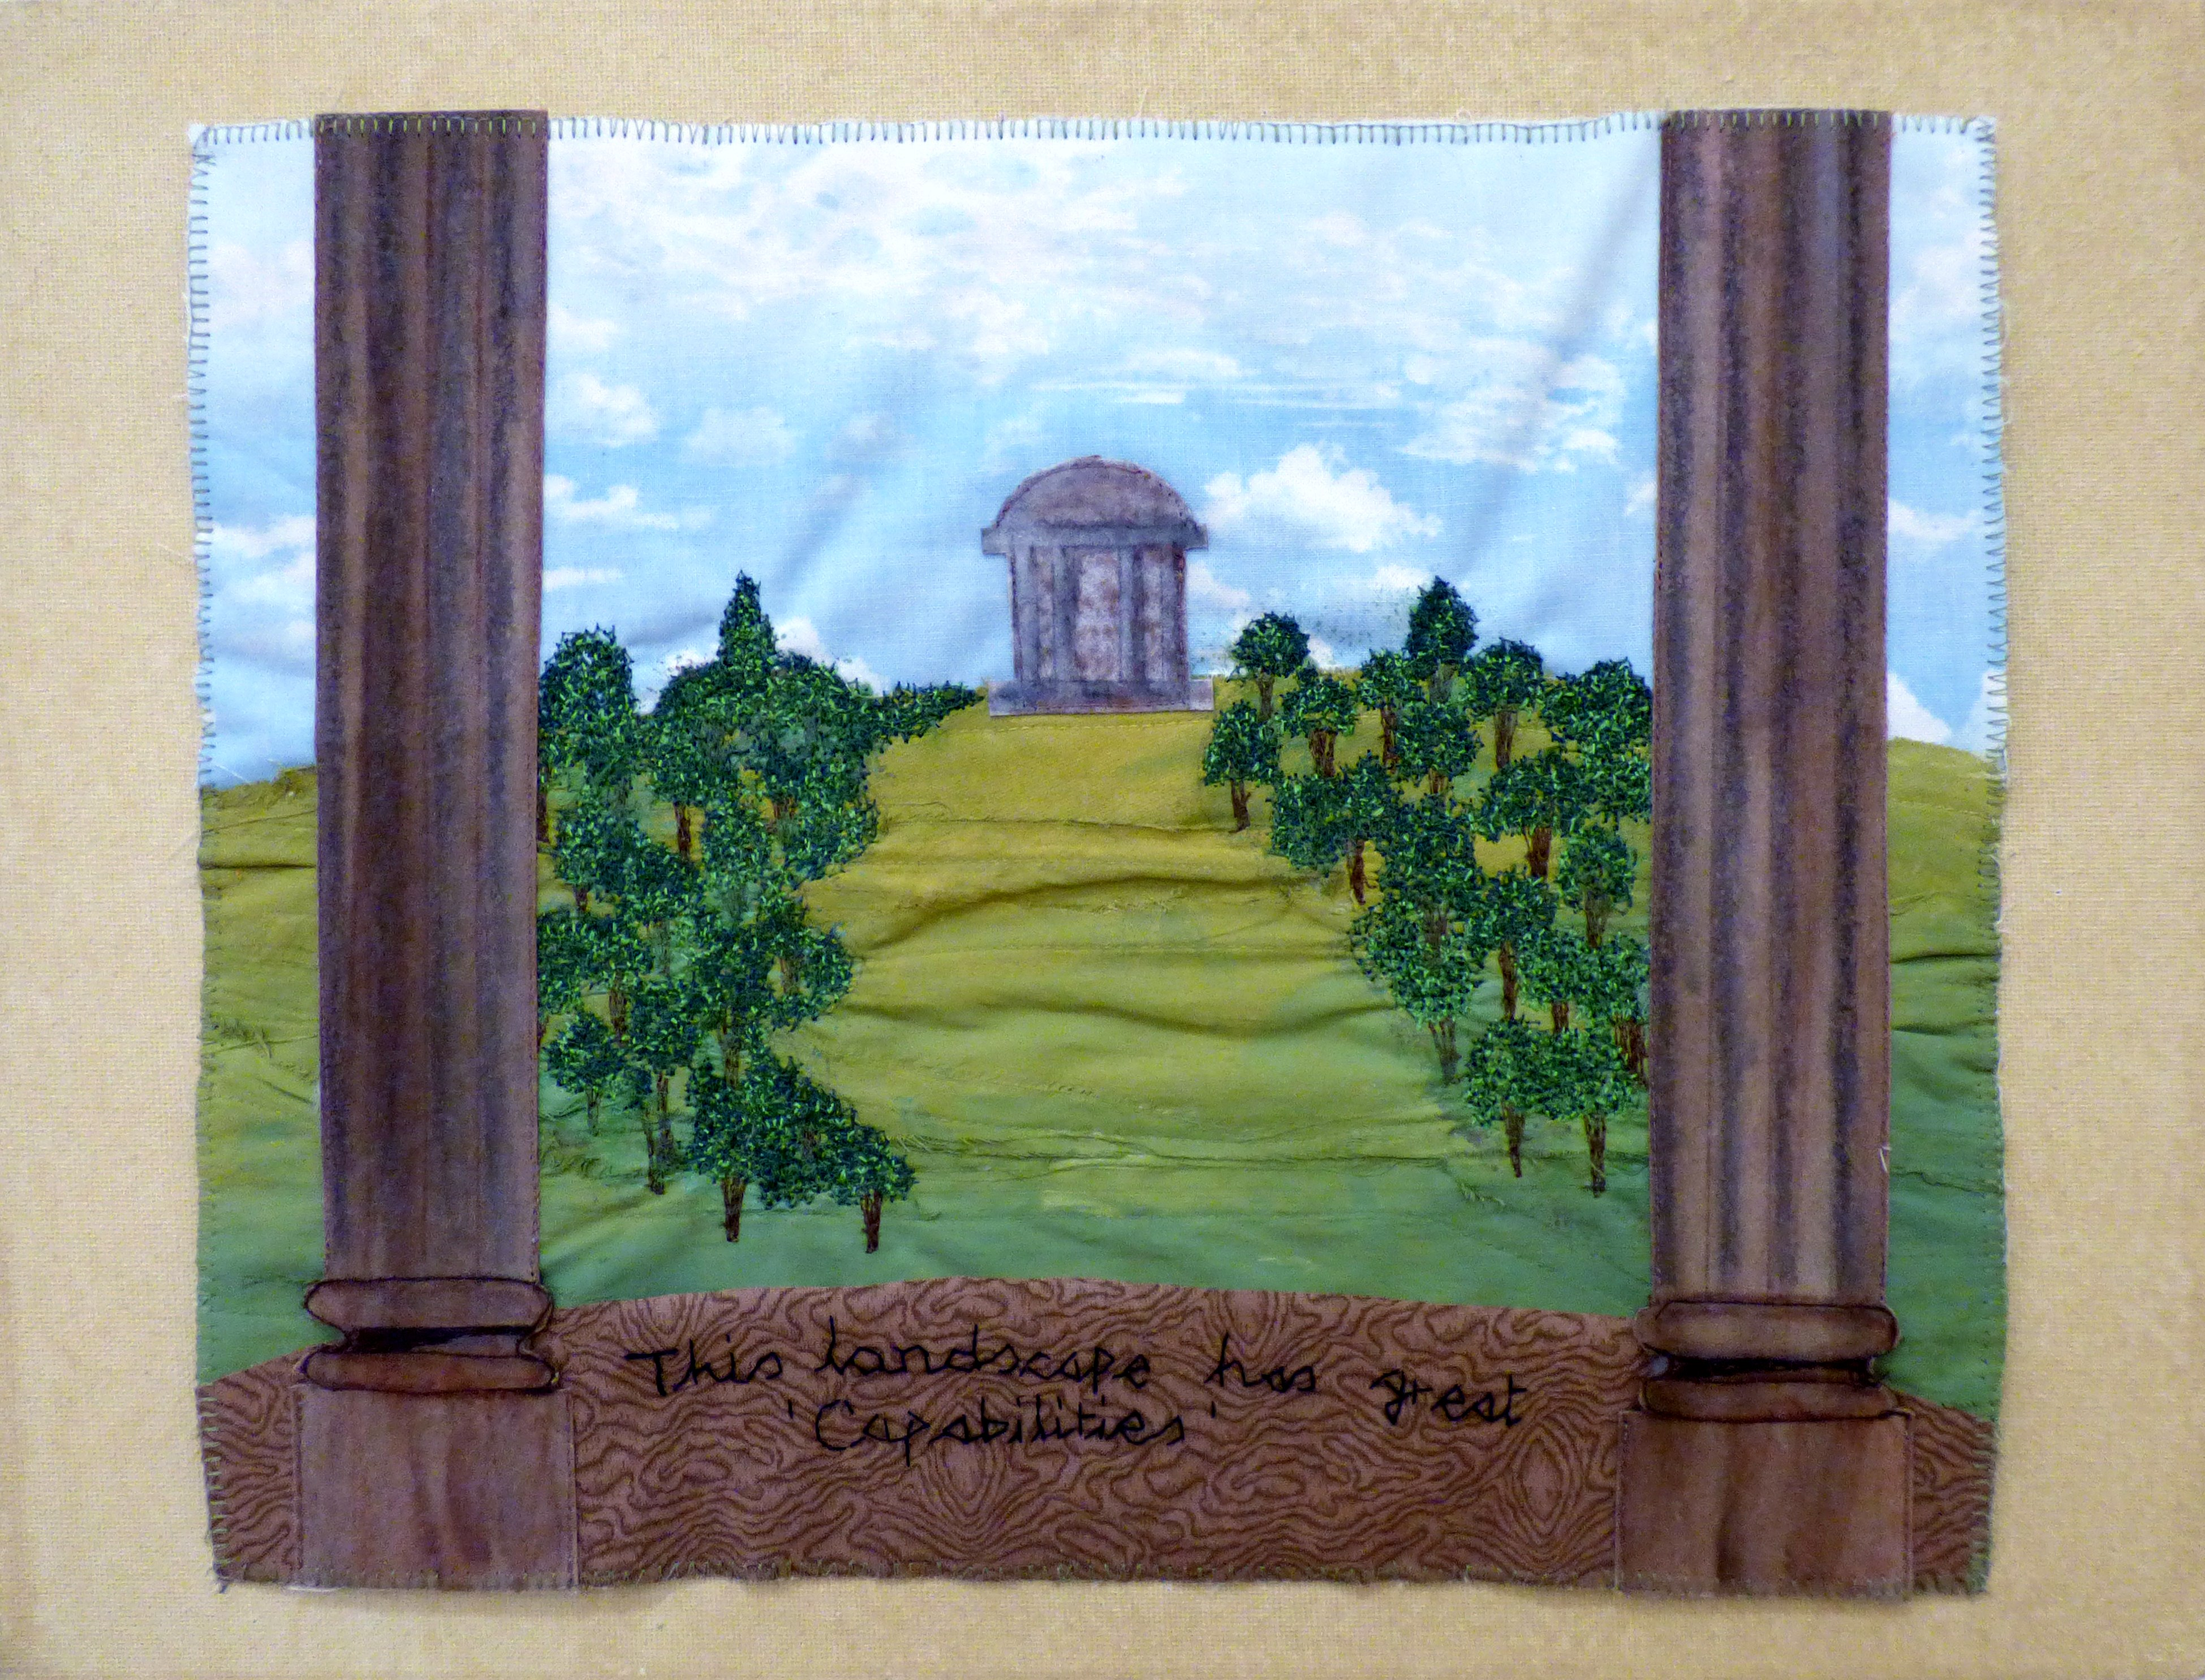 A CAPABILITY BROWN LANDSCAPE by Christina Harris, Glossop & Distrist EG, machine and hand embroidery on painted cotton